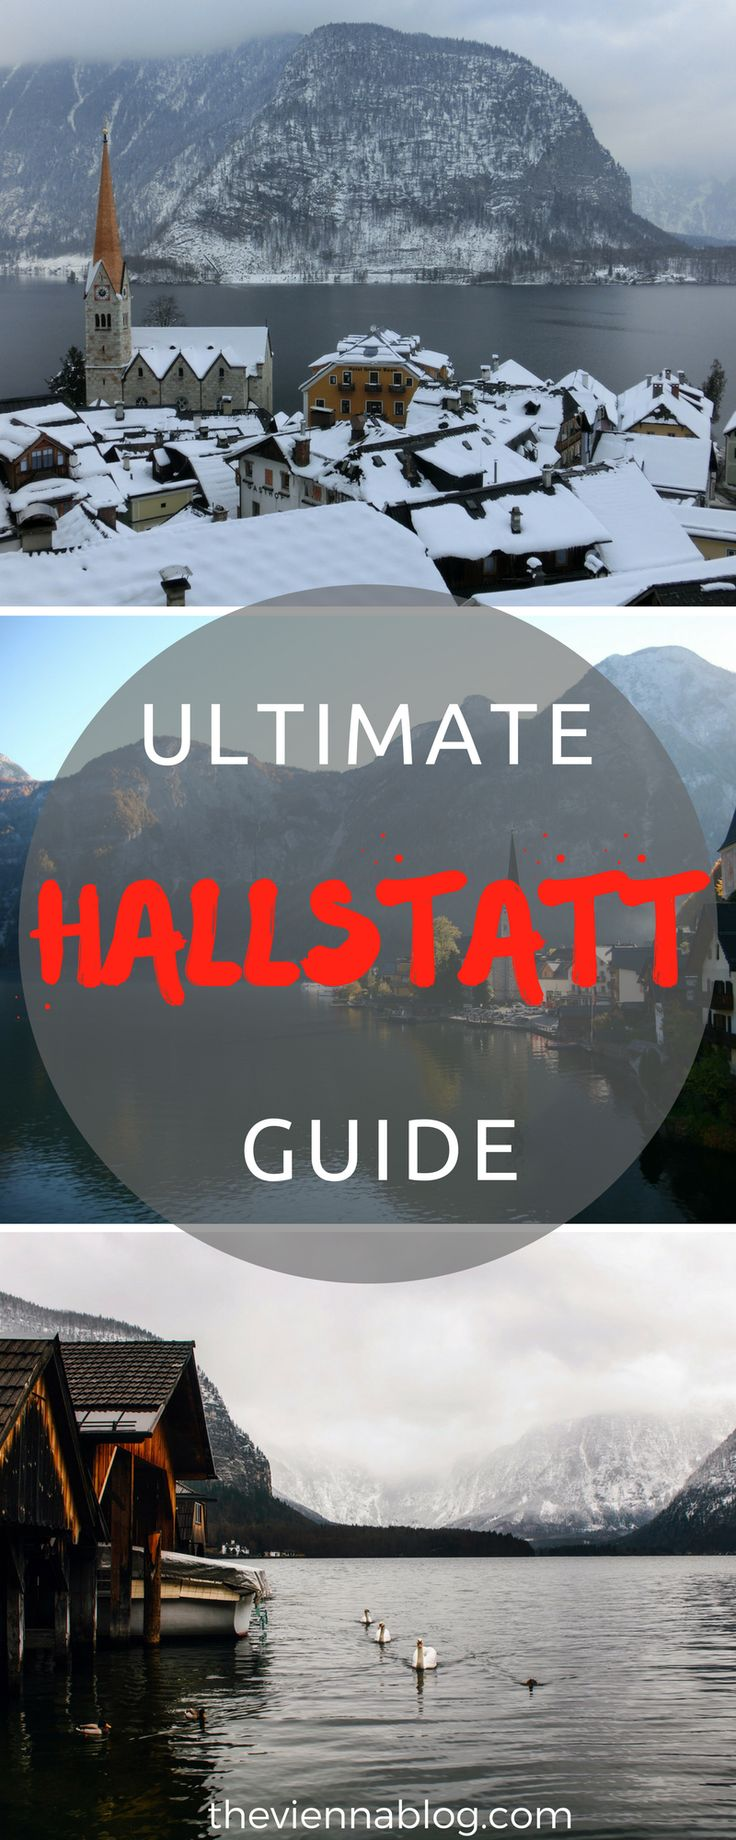 Ultimate Travel Guide to Hallstatt, Austria beautiful attractions, Kalvarienberg Church. Market Square. Archaeological artifacts. Museum Hallstatt.